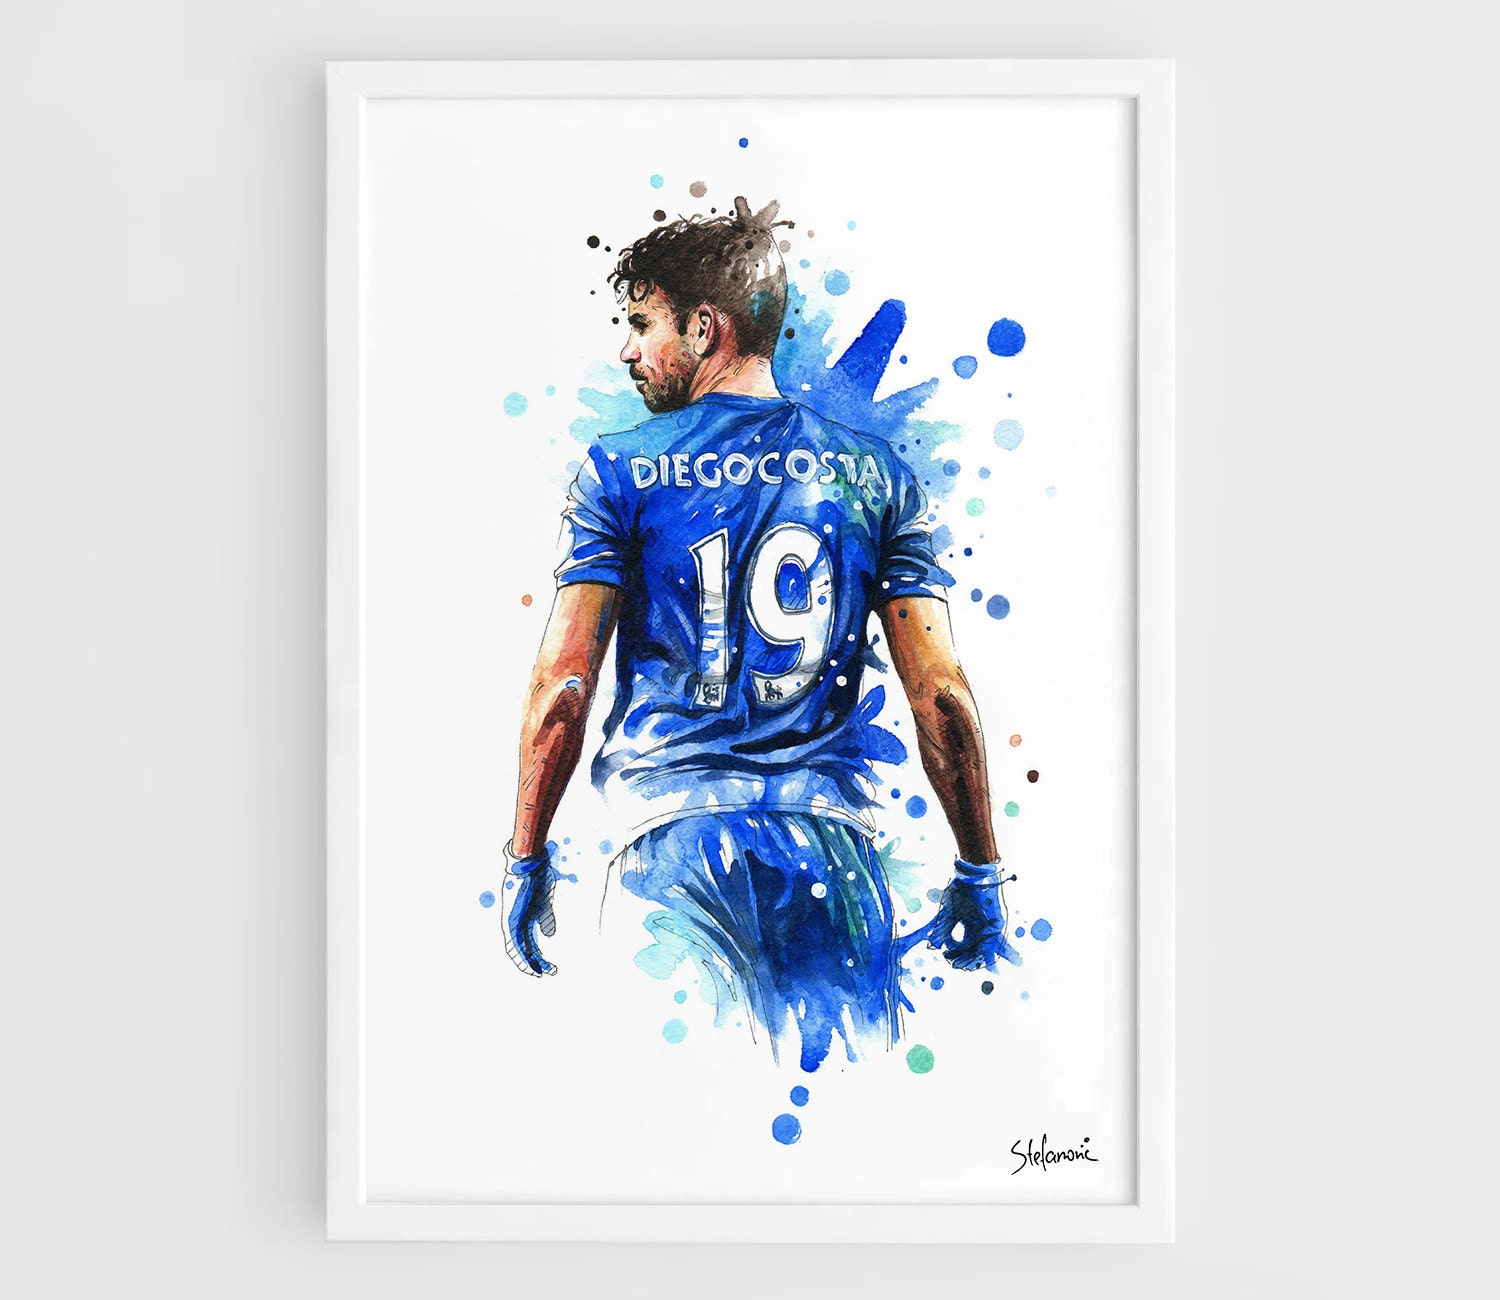 diego costa chelsea fc a3 wall art print poster of the. Black Bedroom Furniture Sets. Home Design Ideas